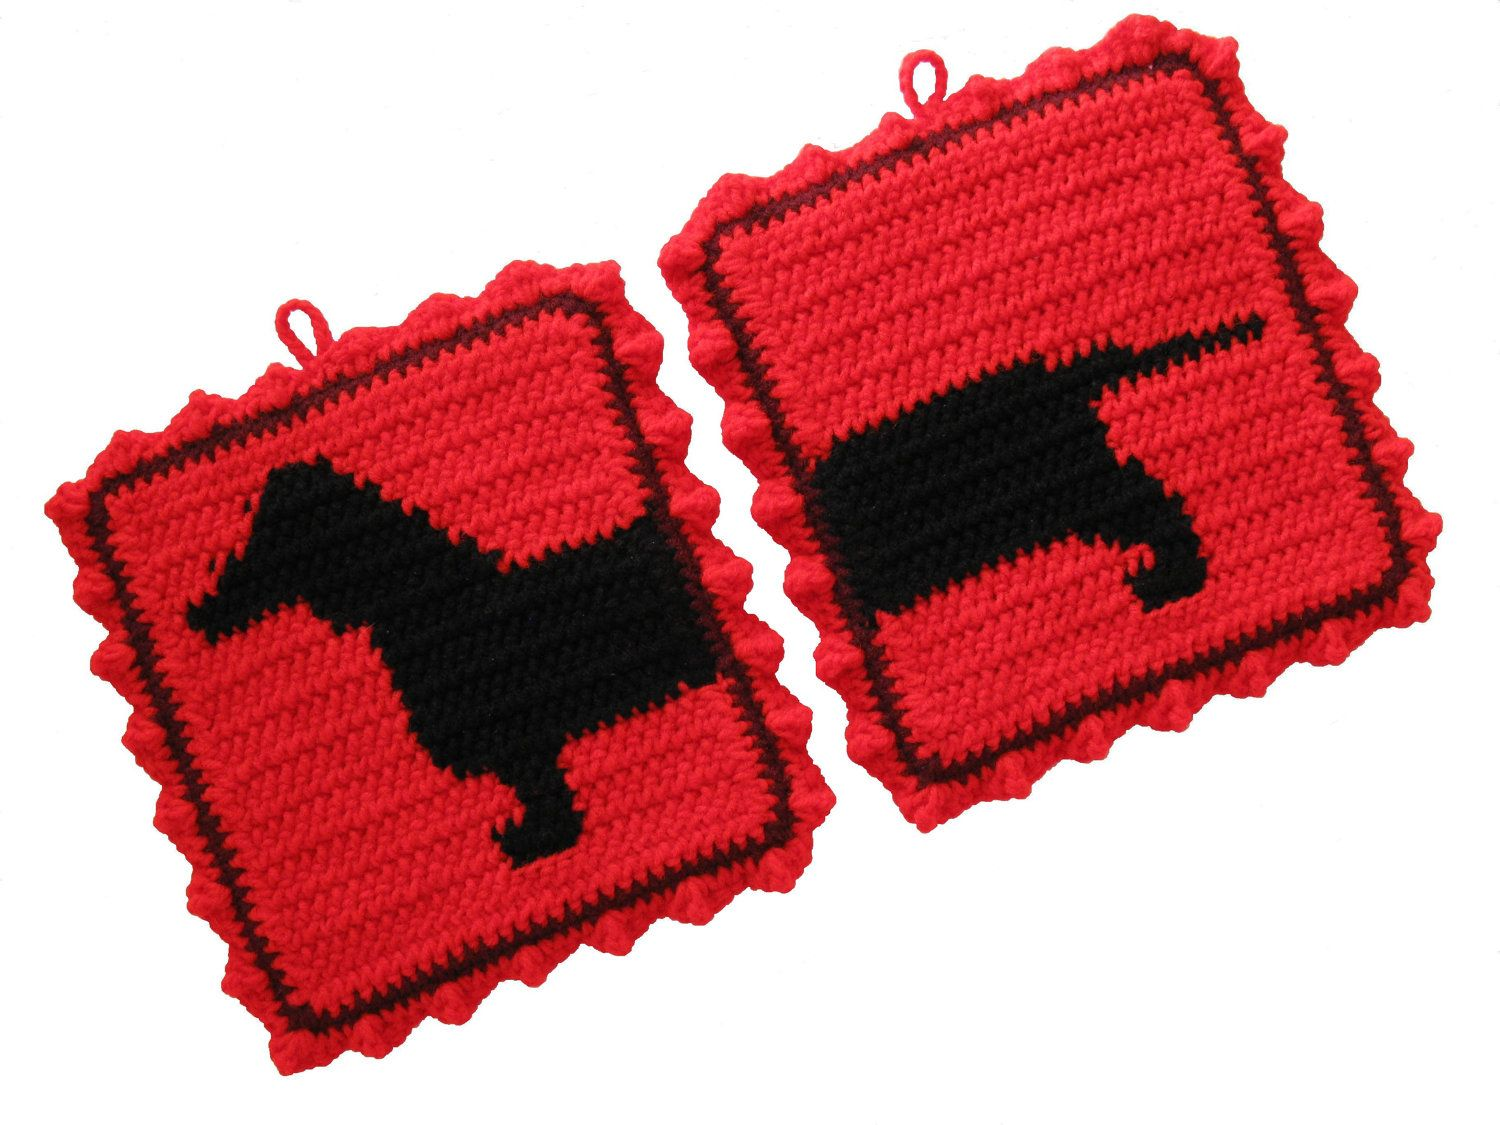 Amigurumi Wiener Dog Pattern : Dachshund pot holders dachshund dog pot holders red crochet